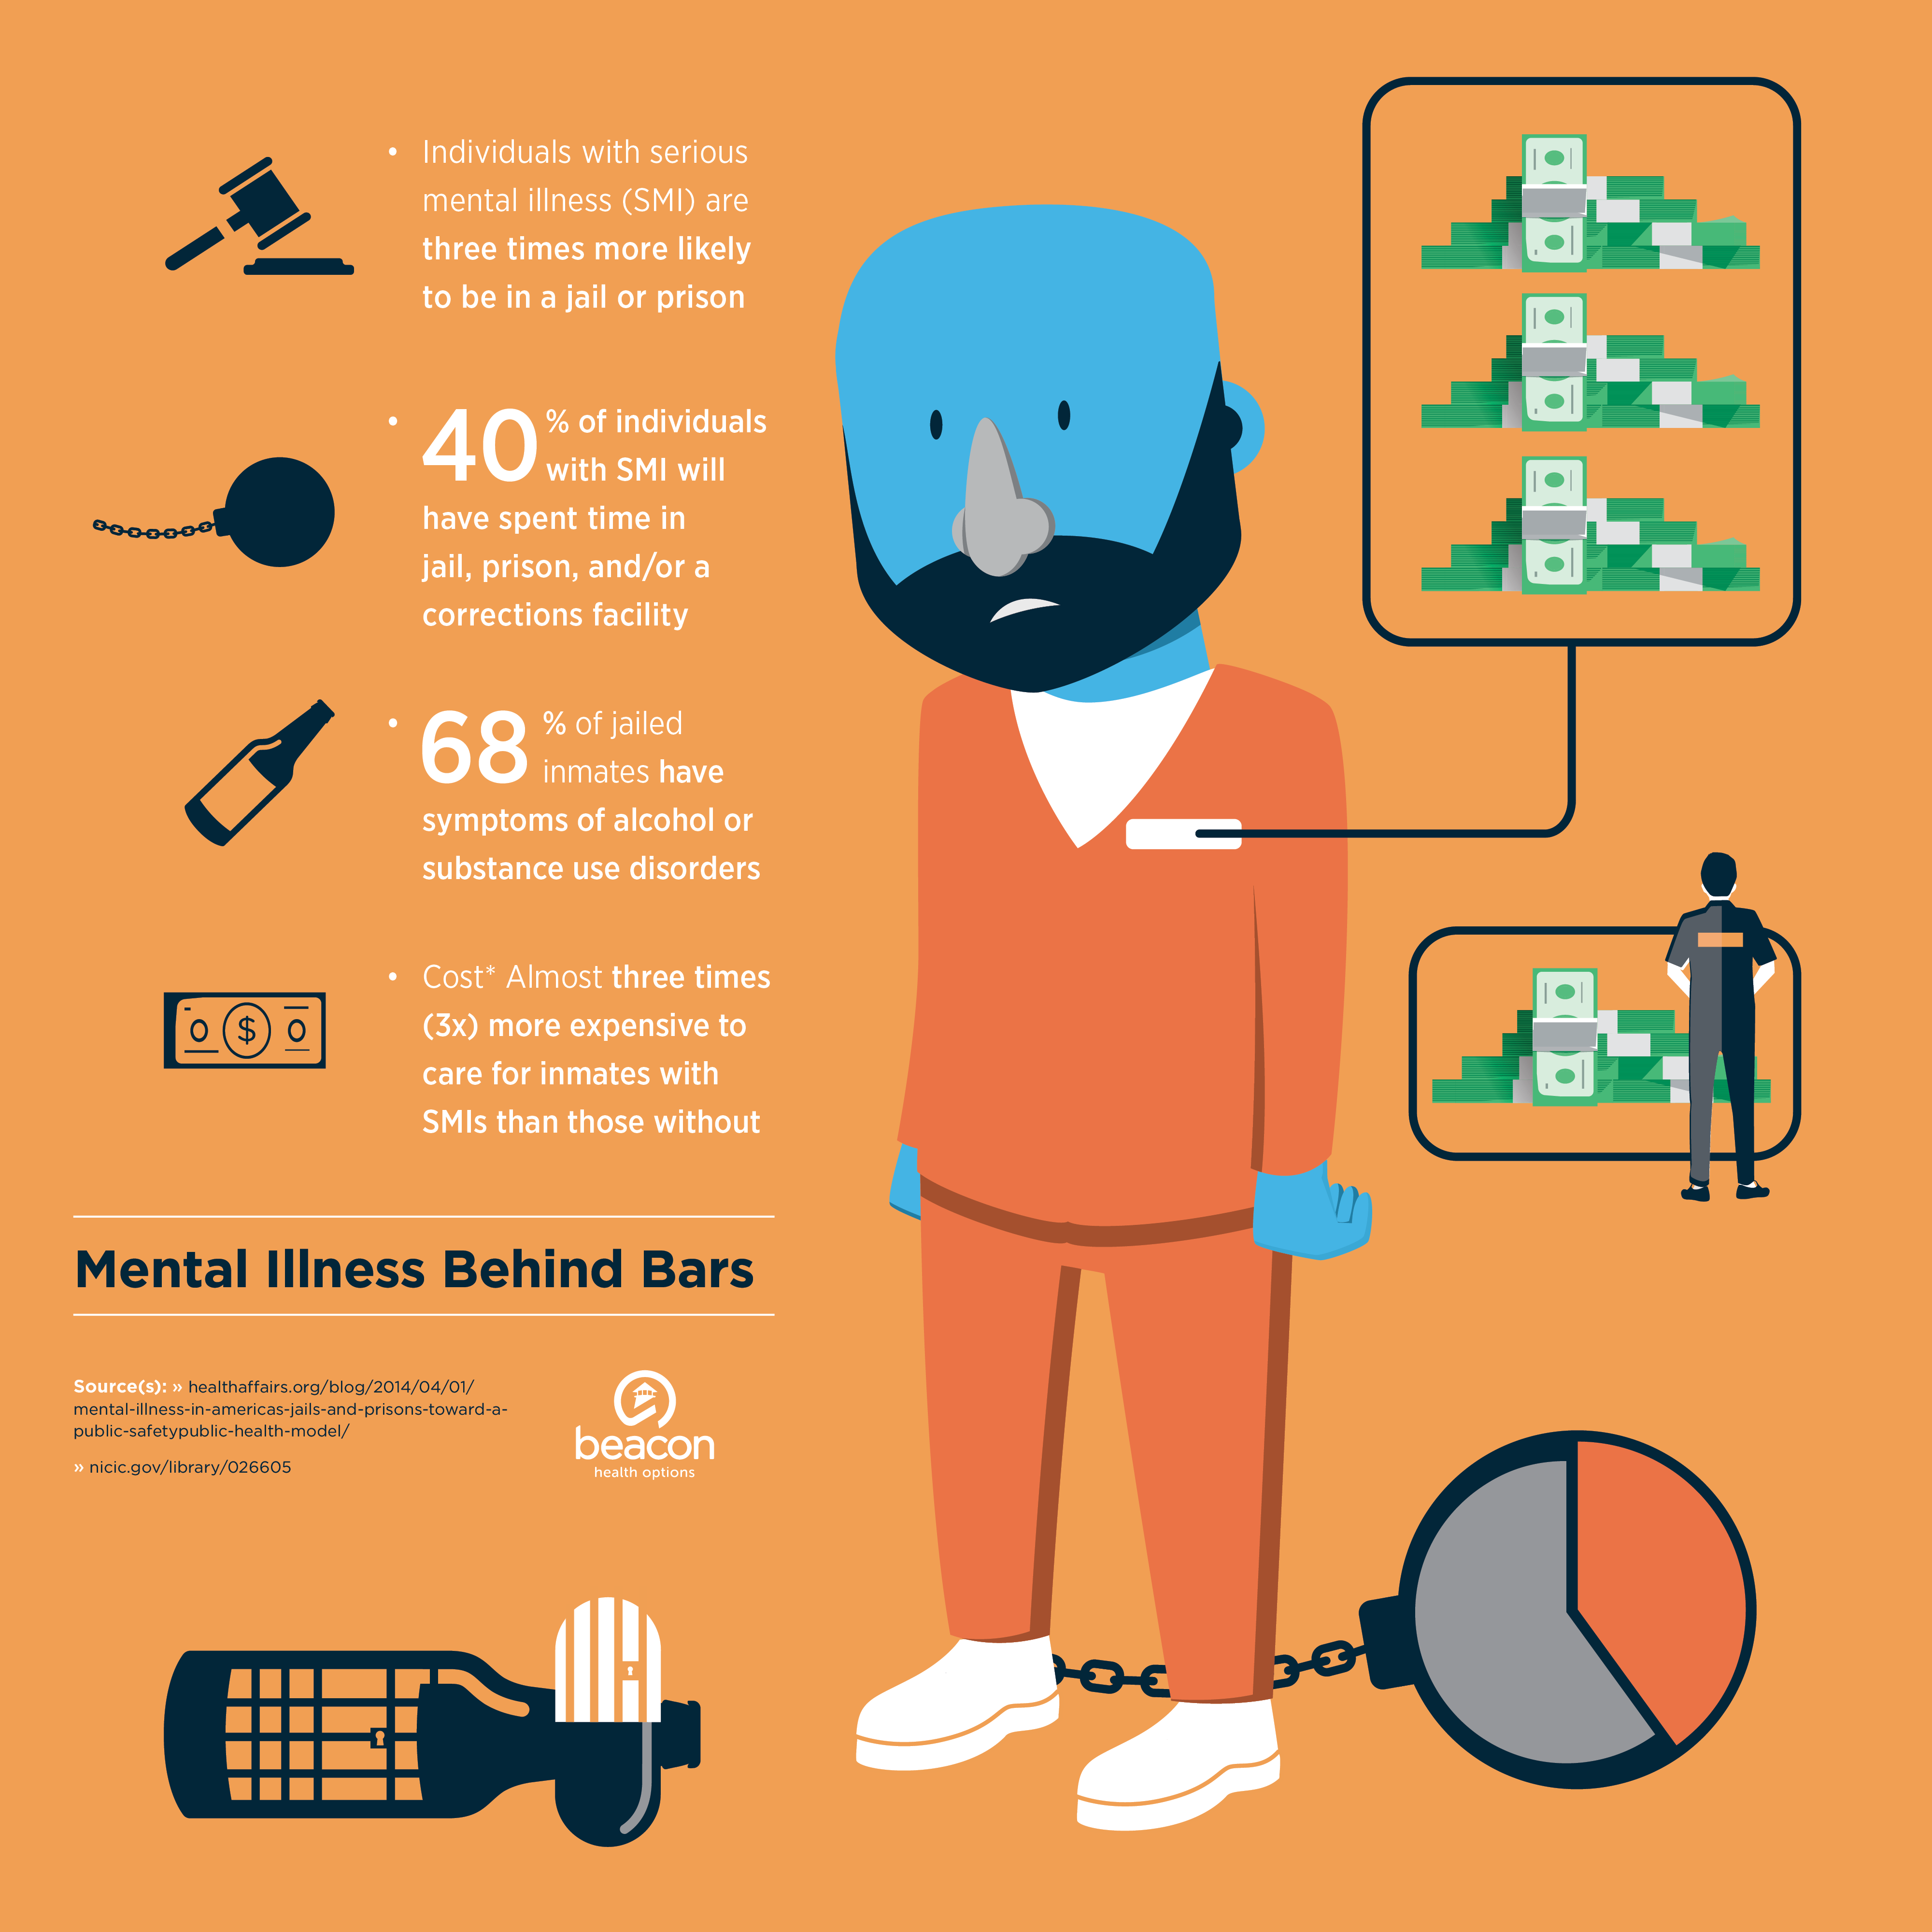 graphic depicting the cost of mental health on the U.S. prison system and statistics about the prevalence of serious mental illness and alcohol and substance use amongst former prisoners